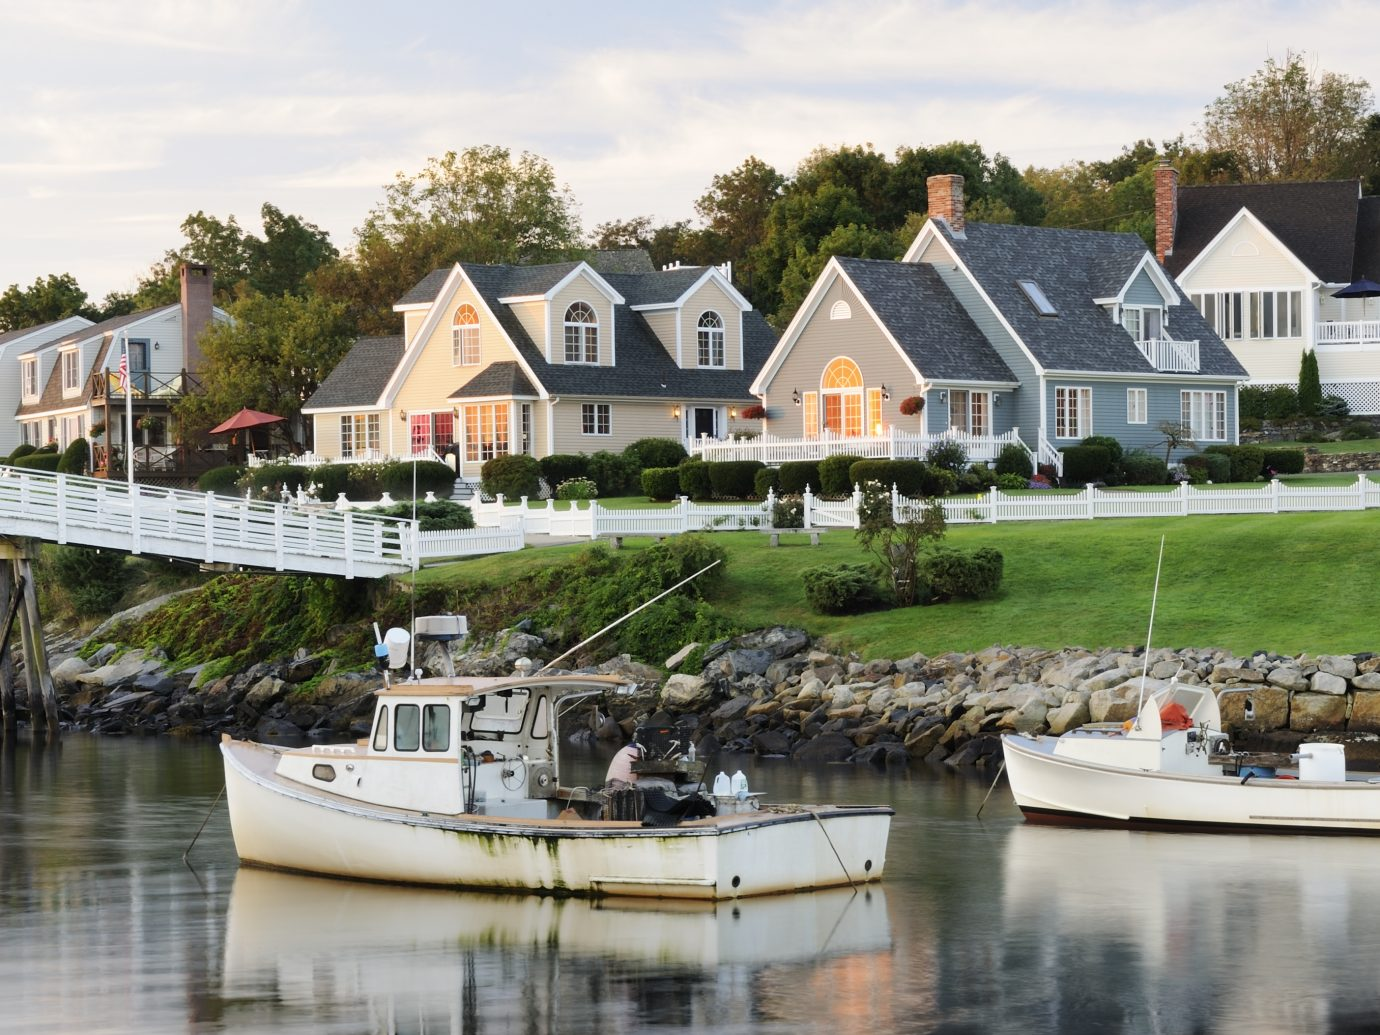 """""""Fishing boats with houses in background at sunrise, blurred water by long exposure, square picture (Perkins Cove, Ogunquit, Maine USA). Best of Maine and New England in lightbox below..."""""""